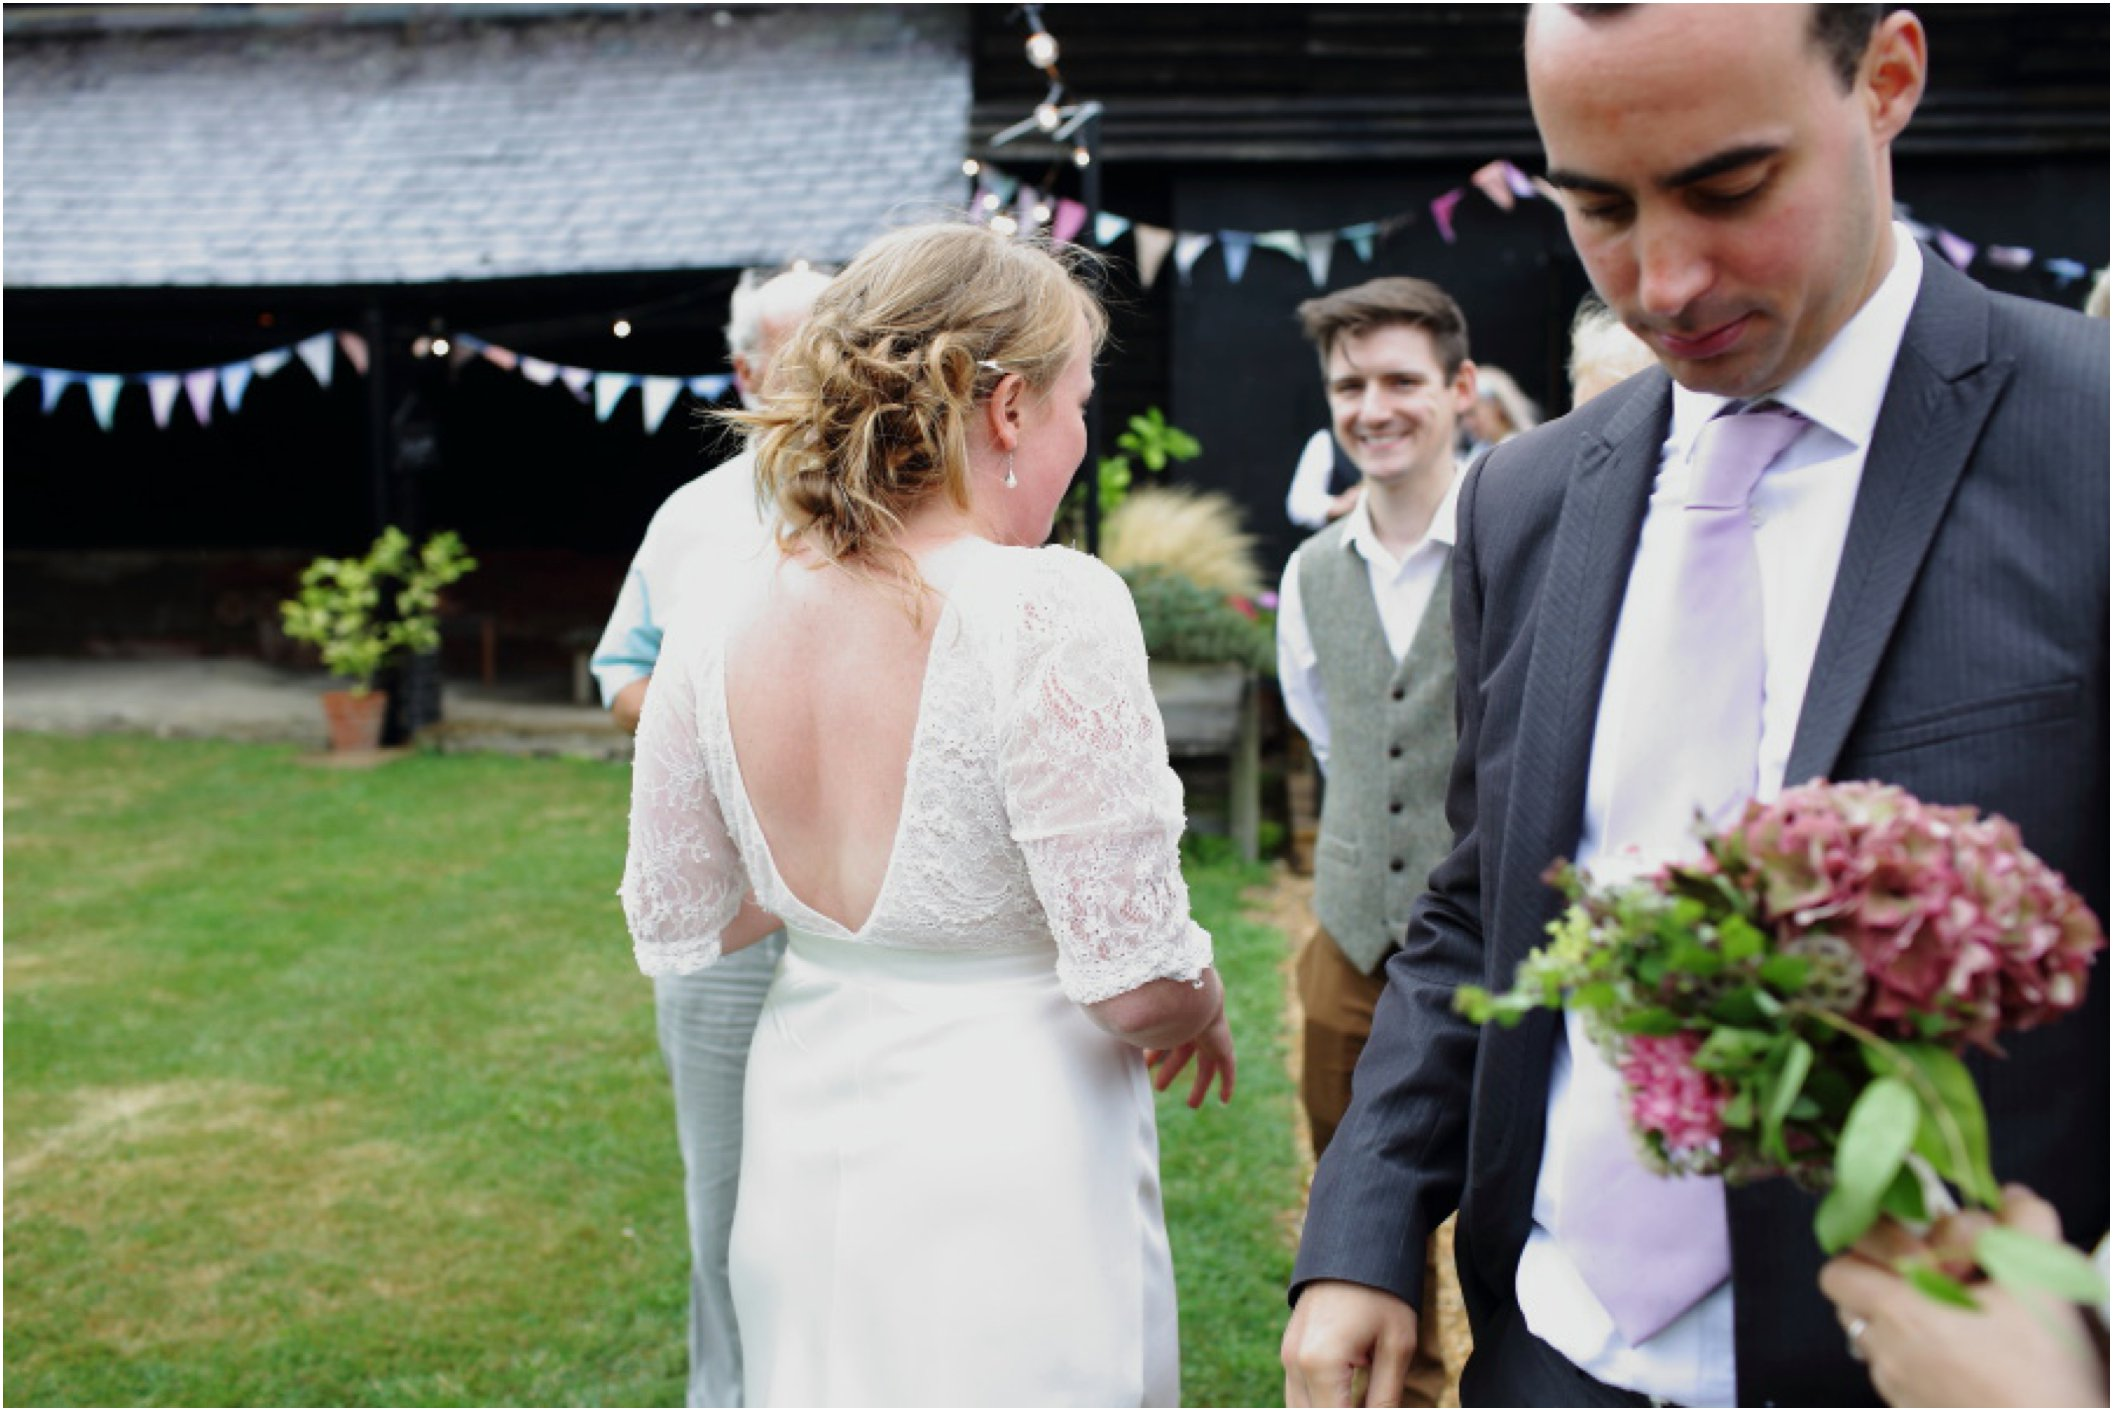 alternative wedding photography at Childerley Cambridge